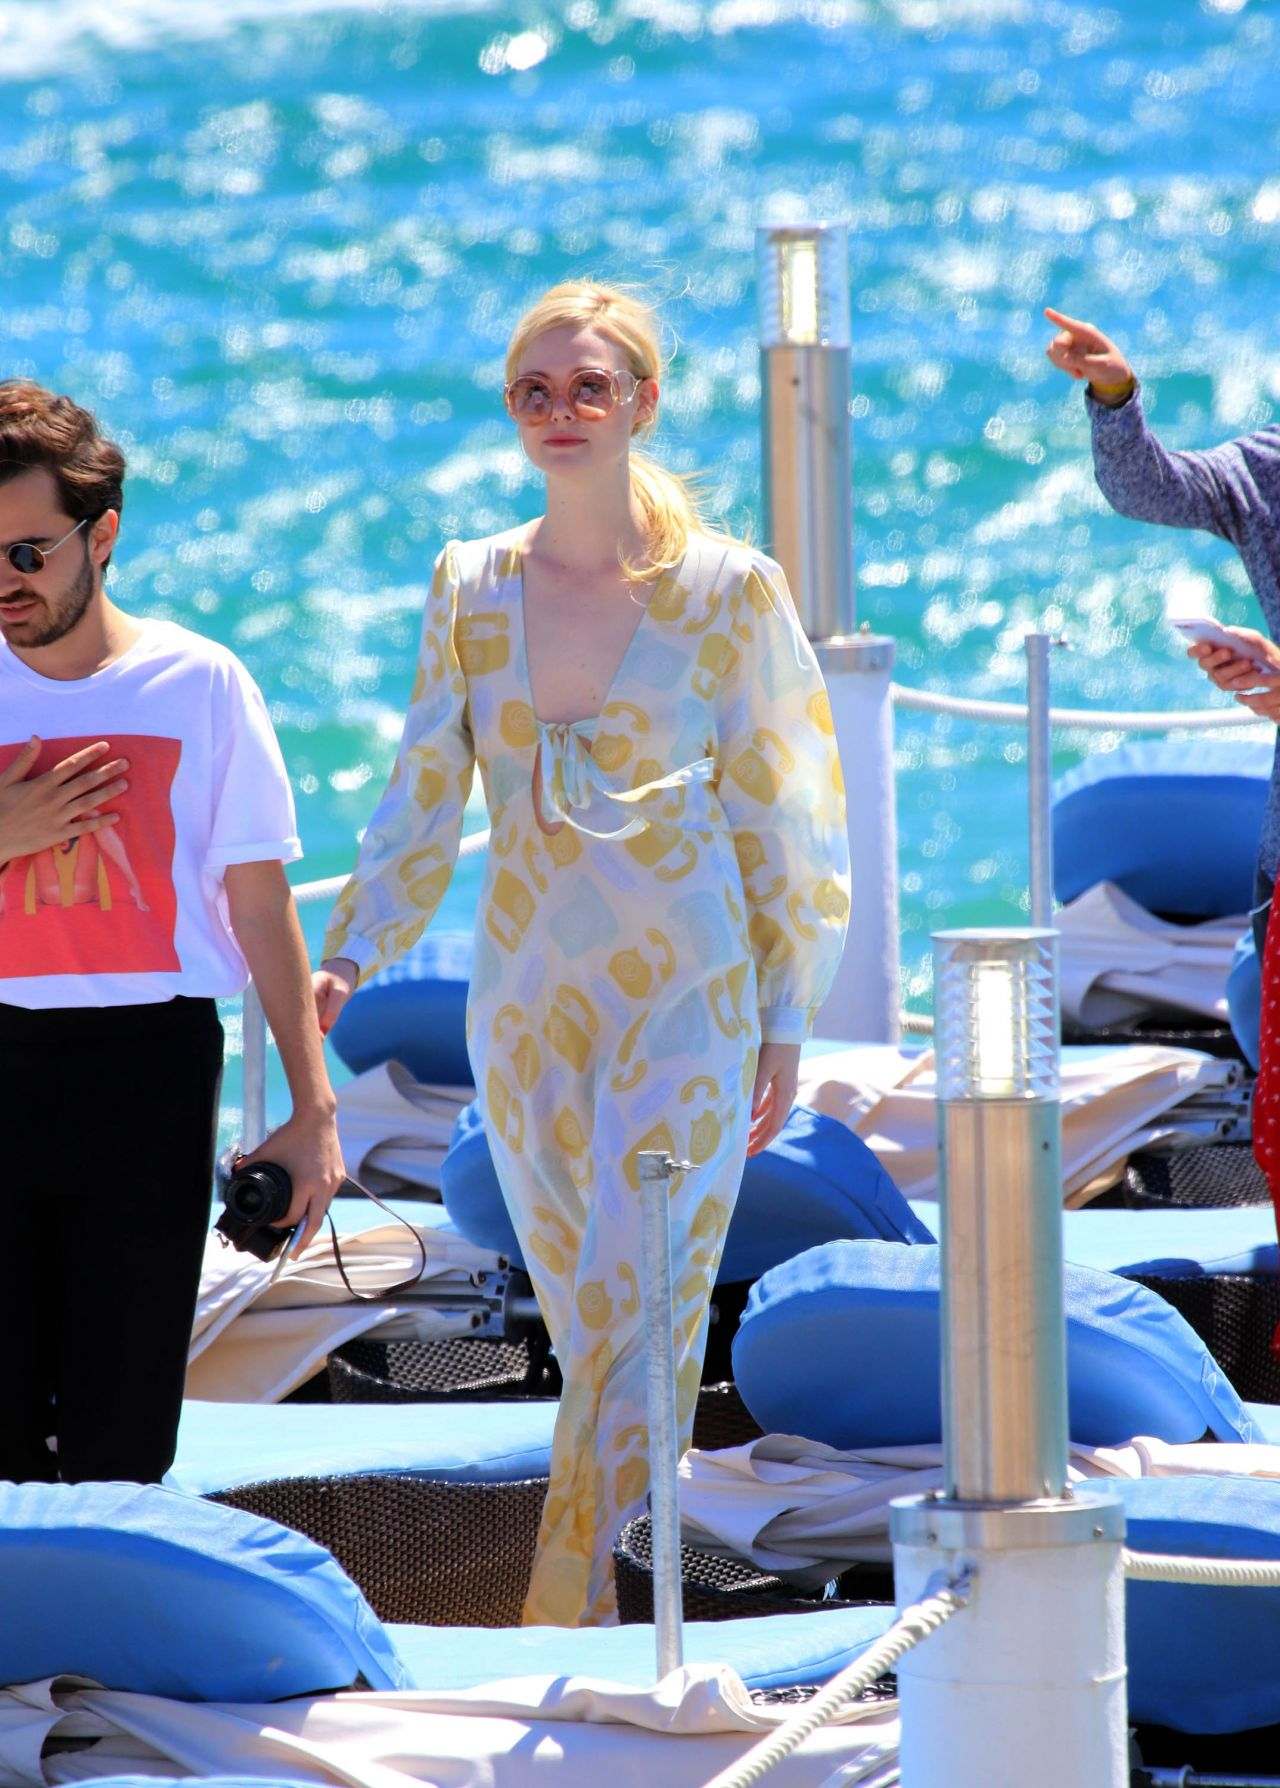 Elle Fanning Photoshoot On The Beach In Cannes France